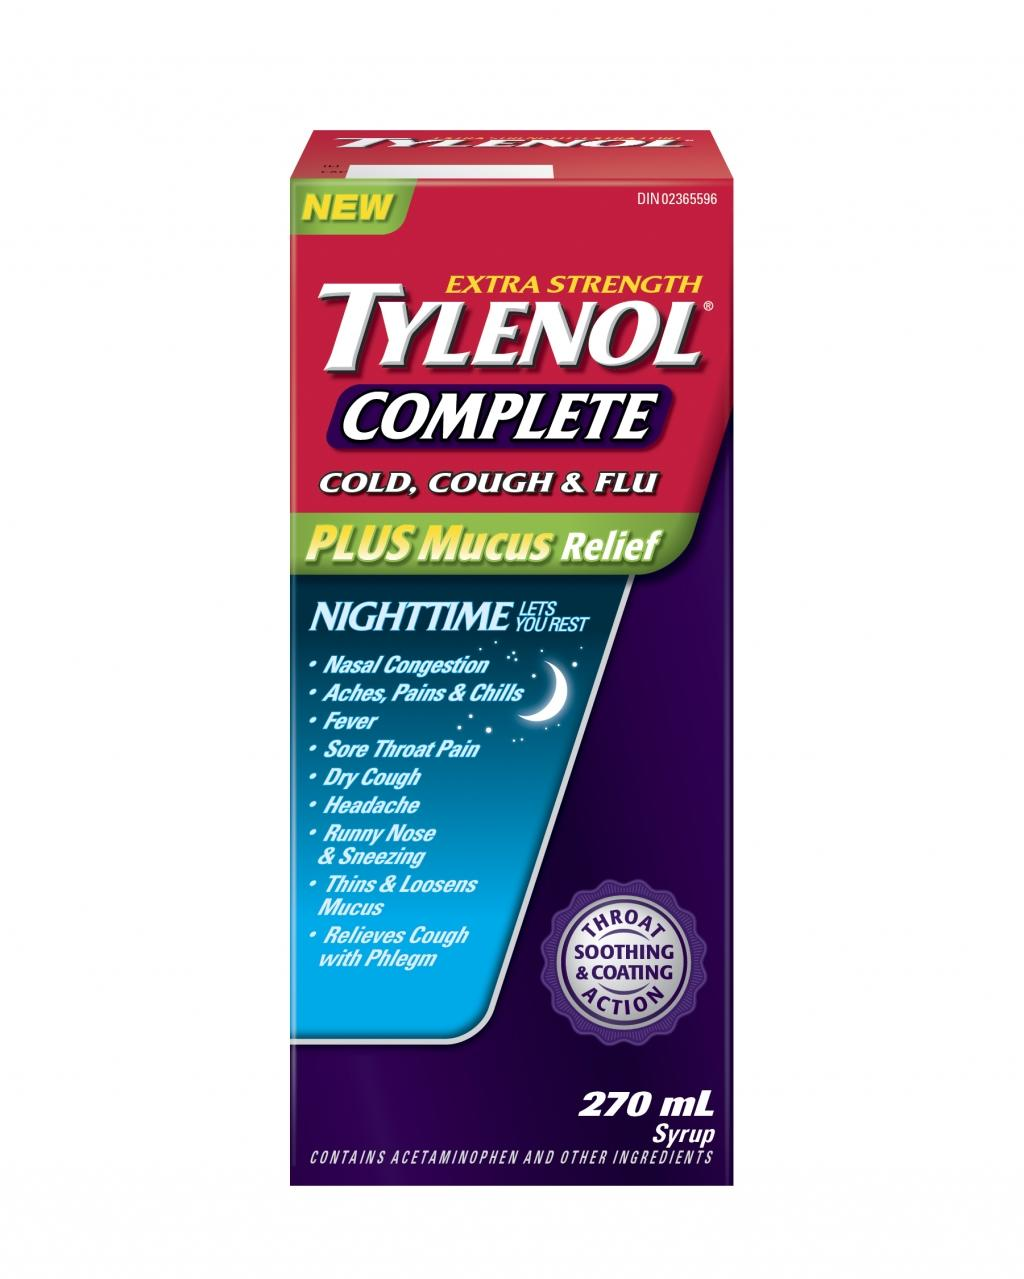 Extra Stength TYLENOL® Complete Cold, Cough & Flu Nighttime Syrup